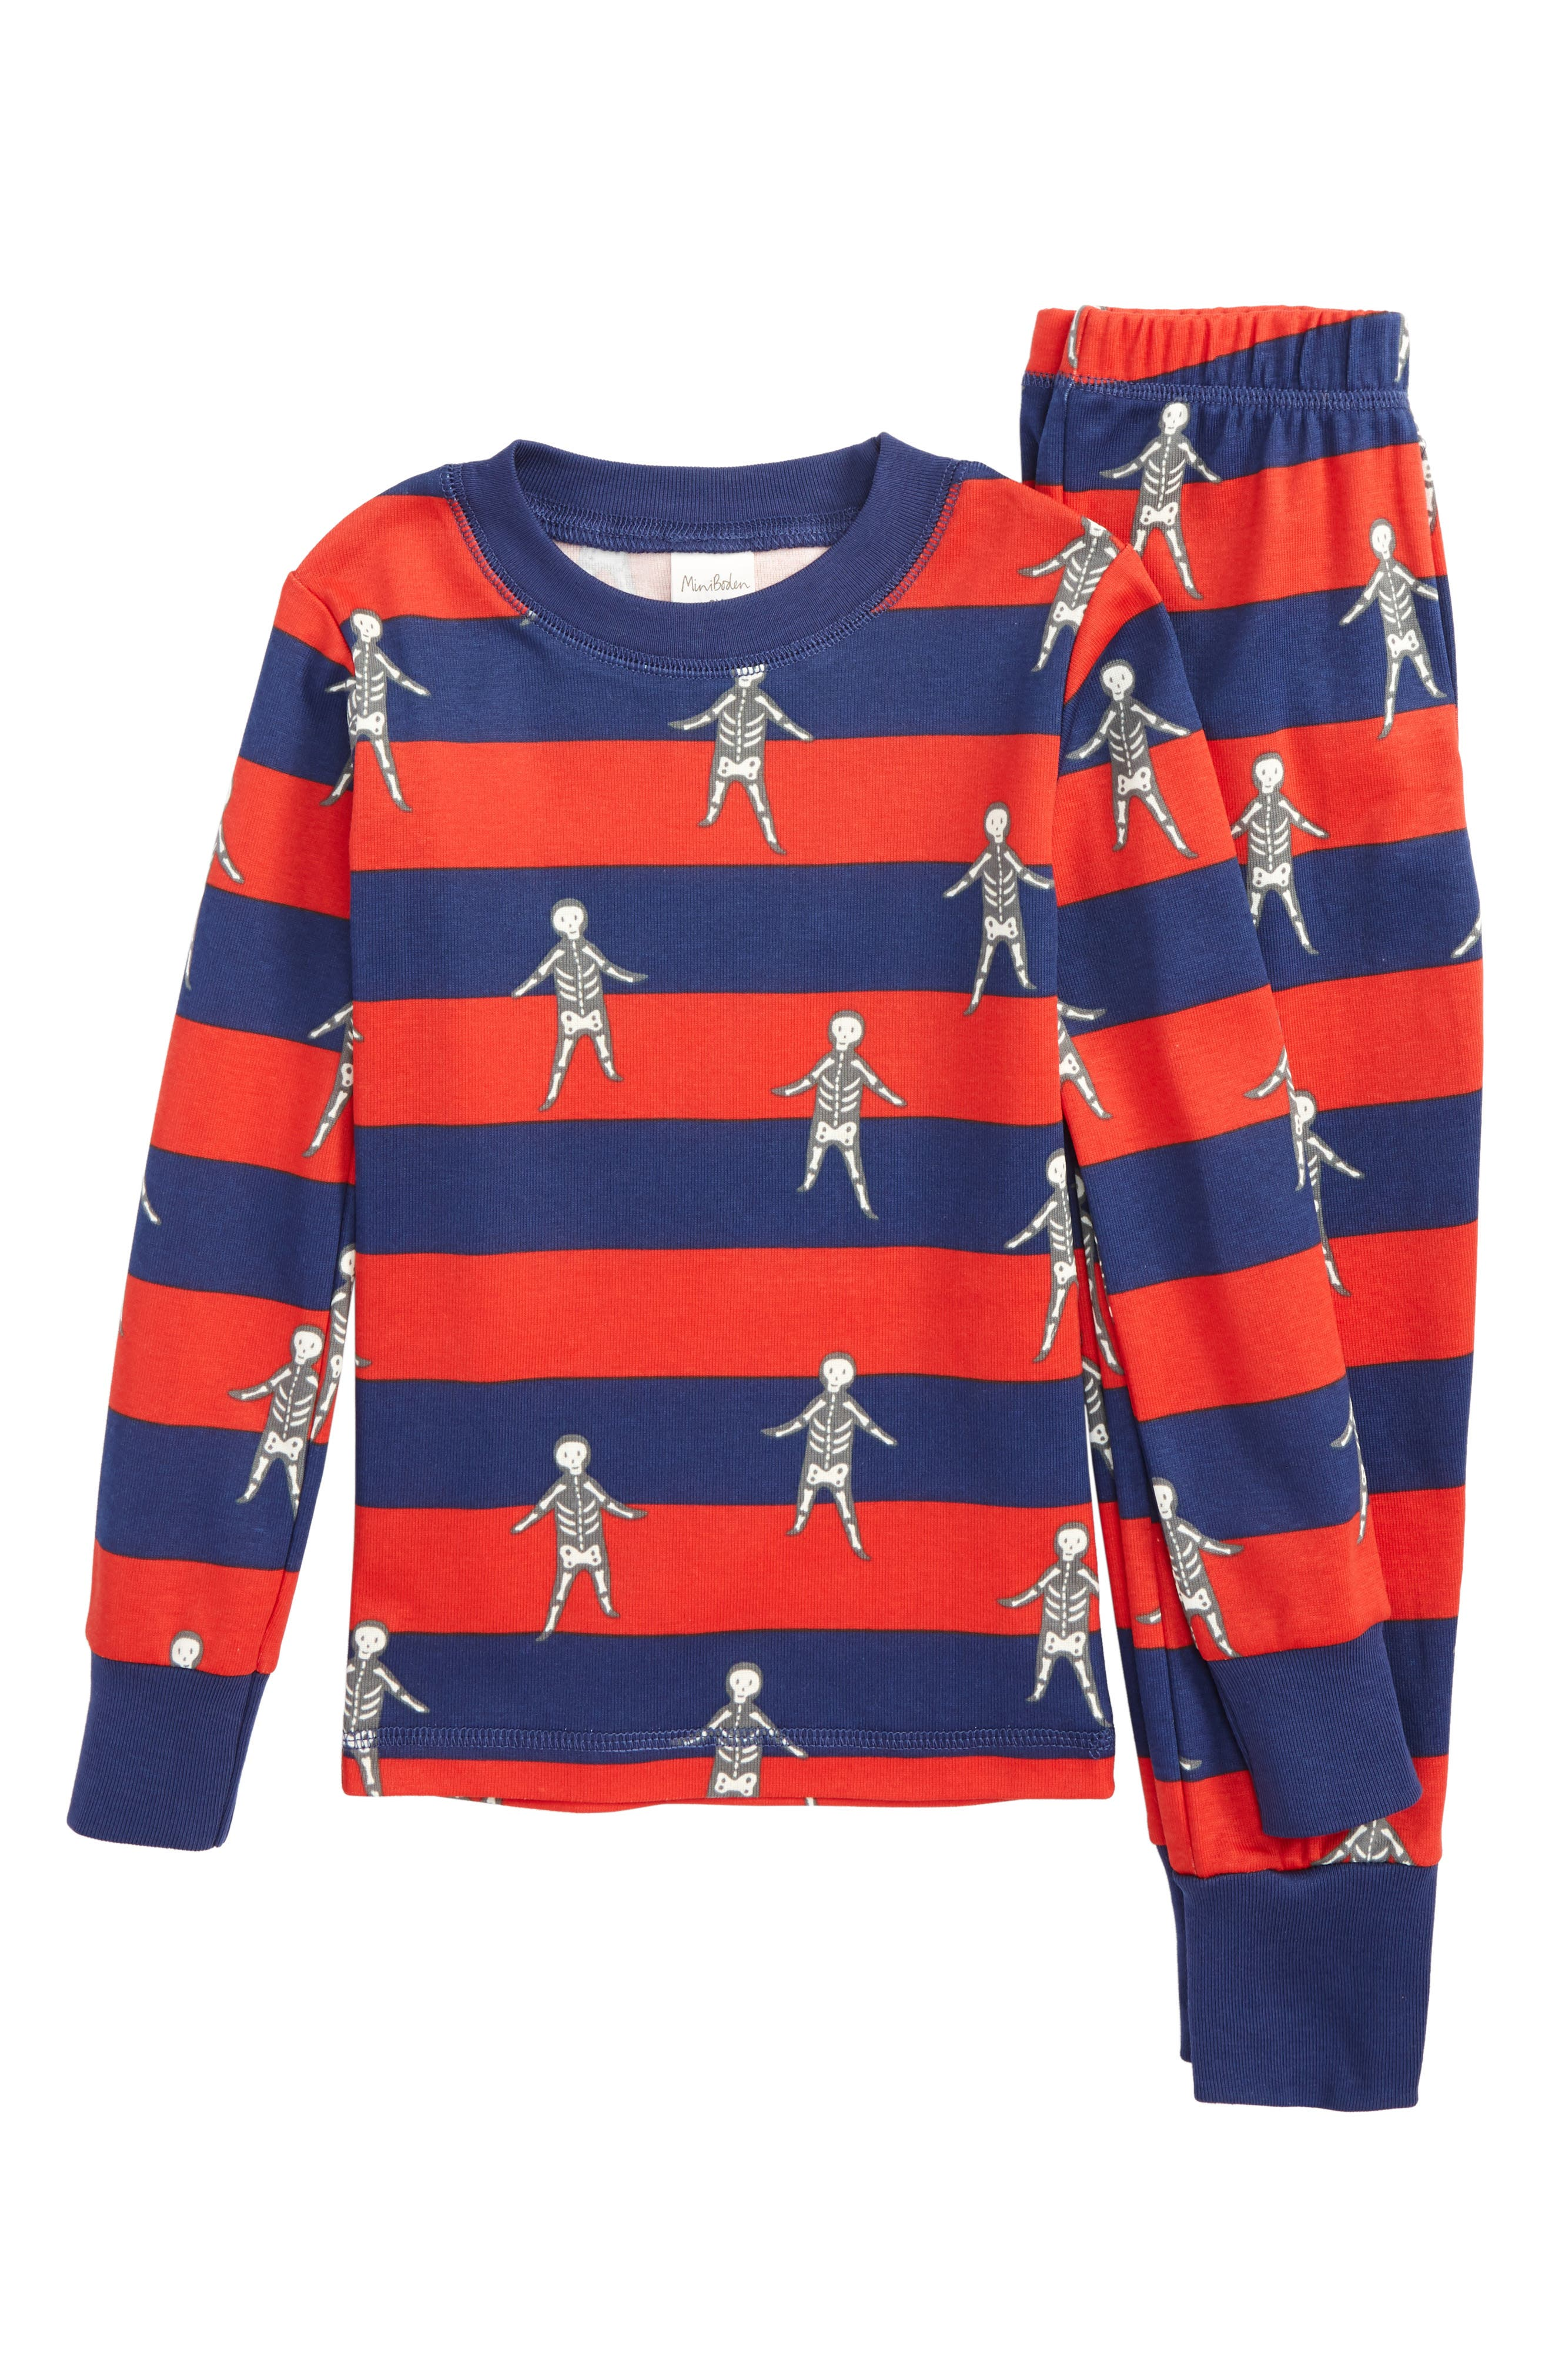 Main Image - Mini Boden Glow in the Dark Fitted Two-Piece Pajamas (Toddler Boys, Little Boys & Big Boys)